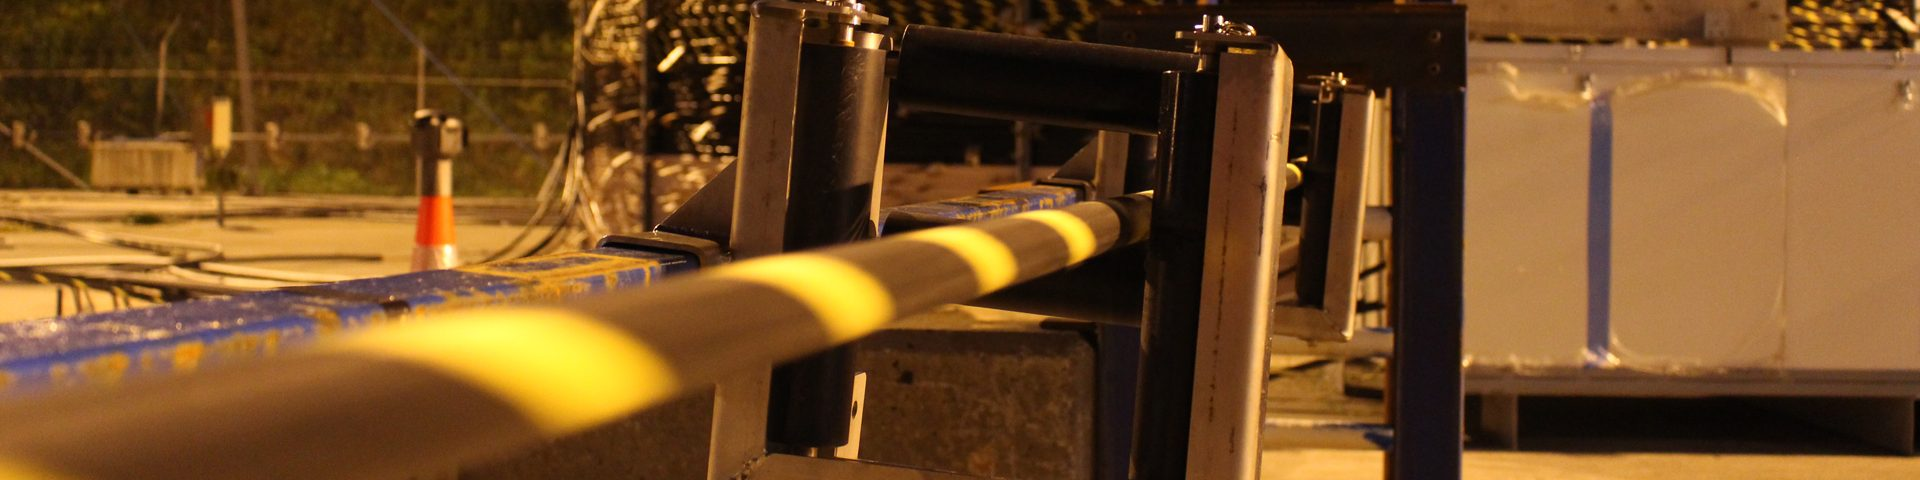 Cloud Funds Subsea Cable Systems